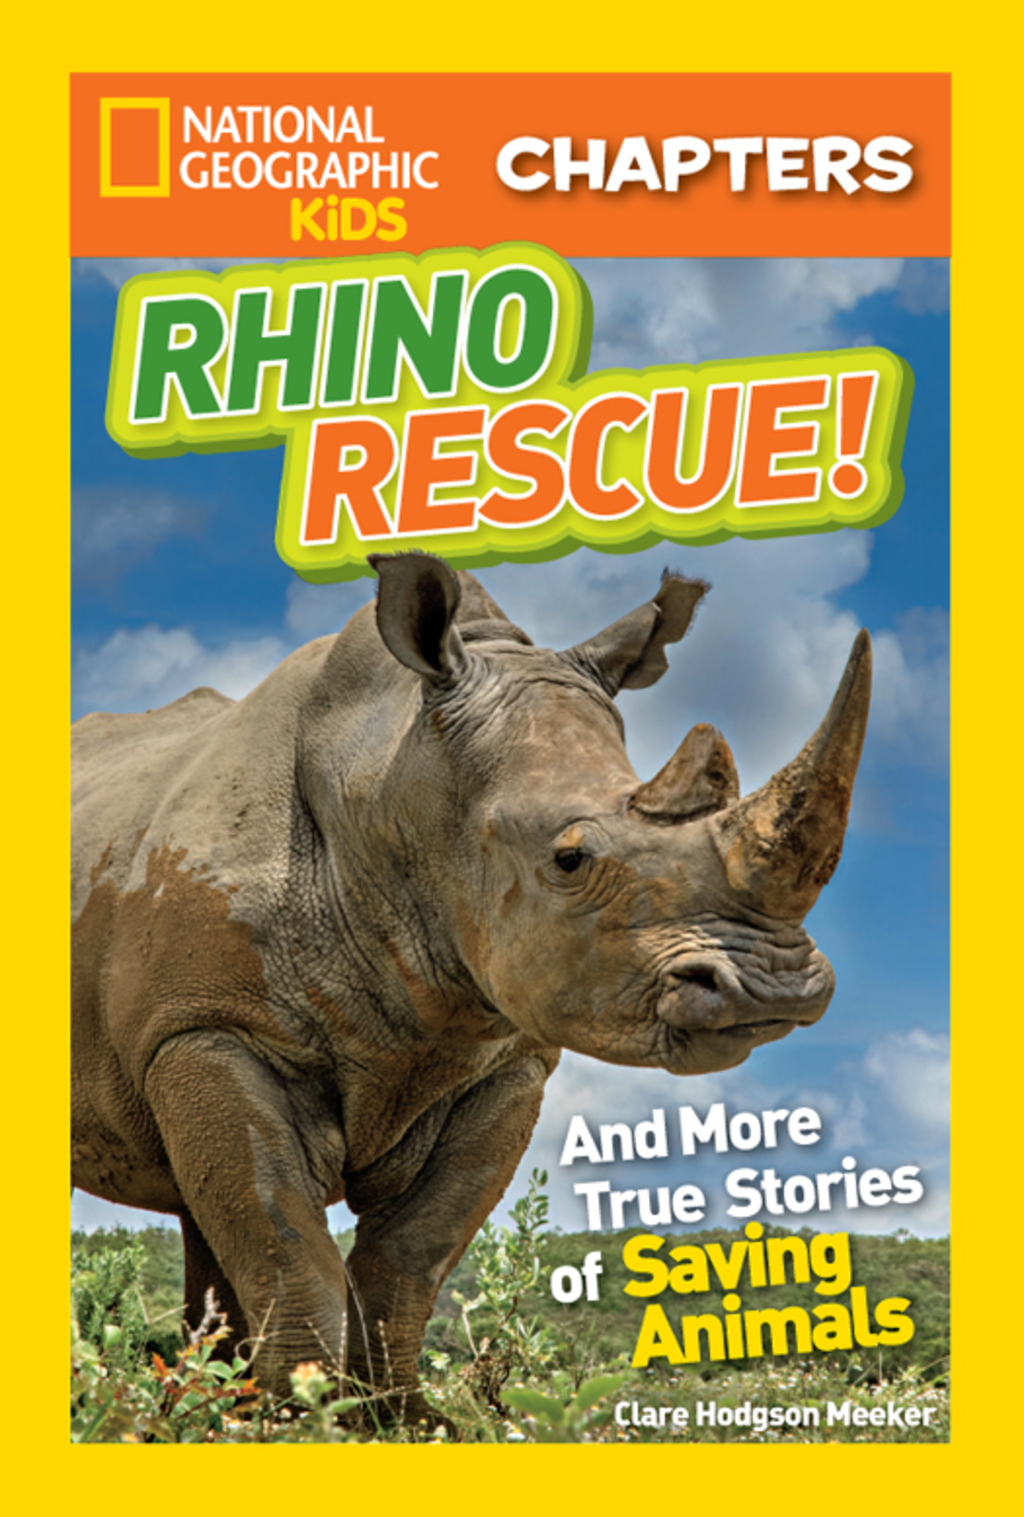 National Geographic Kids Chapters: Rhino Rescue (ebook) eBooks